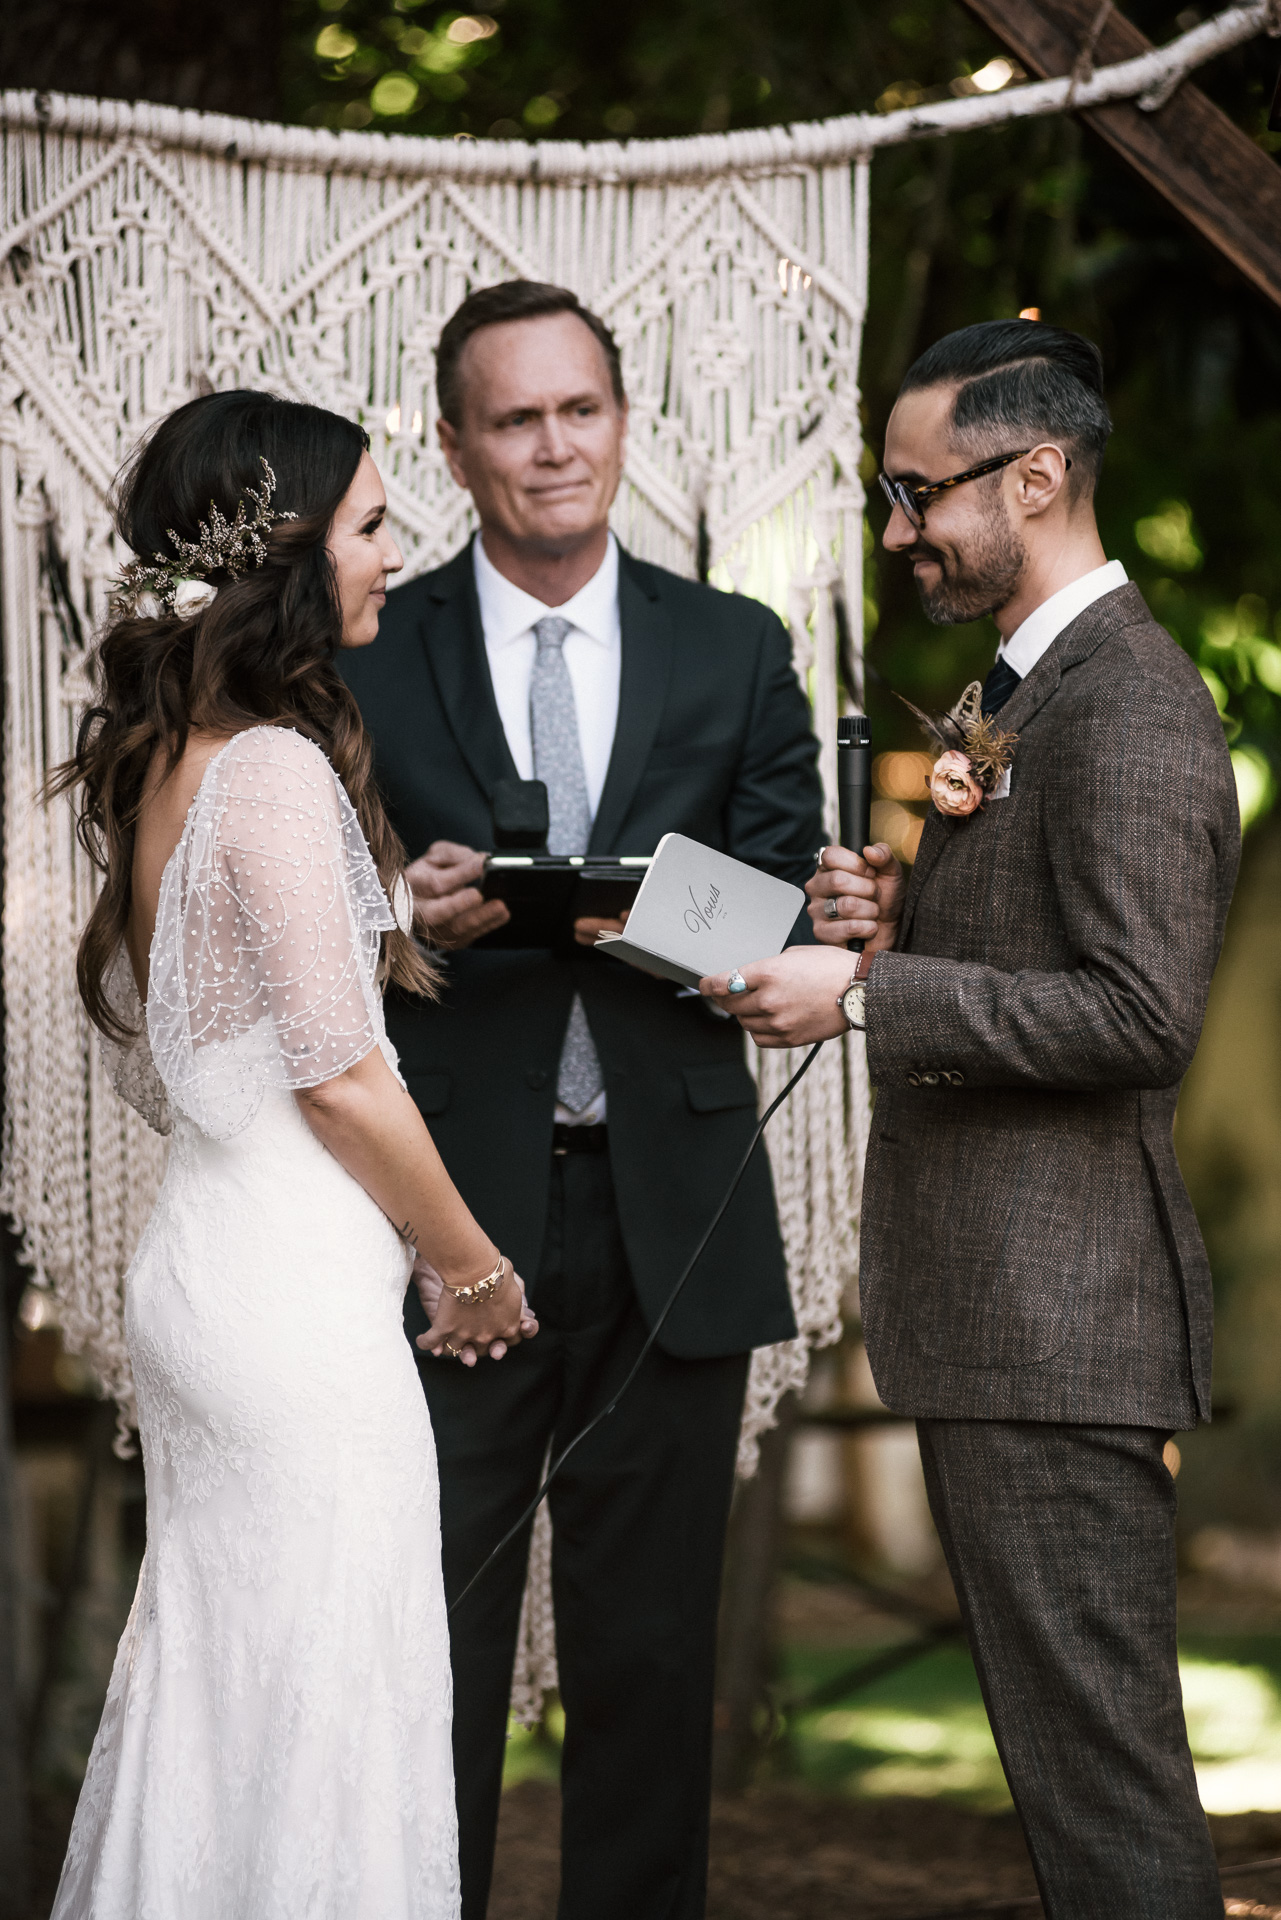 bride listens intently to her grooms vows shot by wedding photographer at the charming St. George Hotel in Volcano California